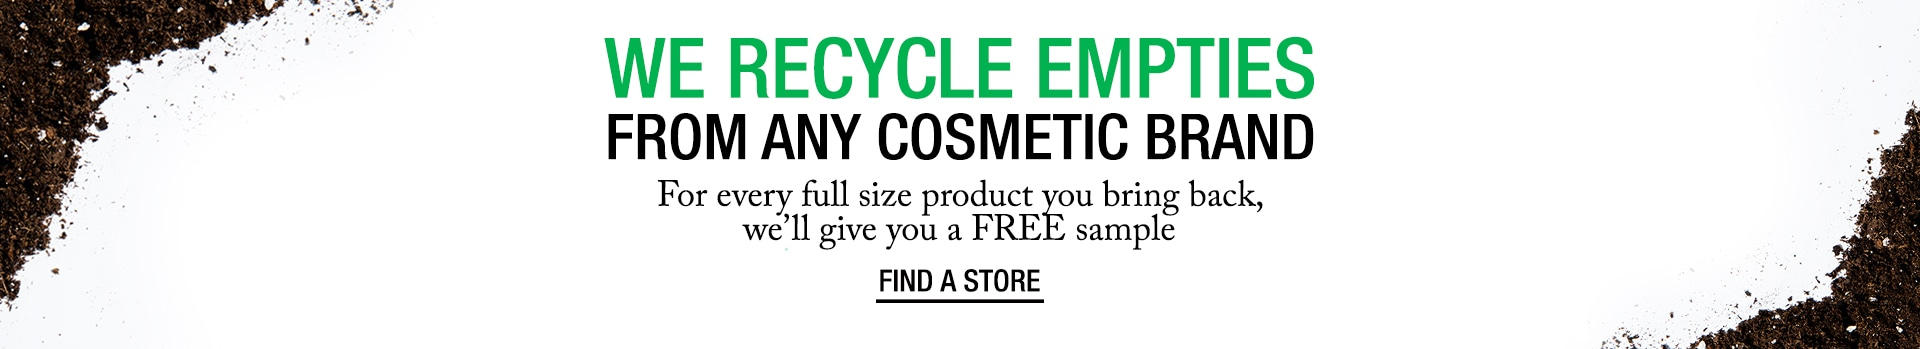 Bring back your empties and get a free sample